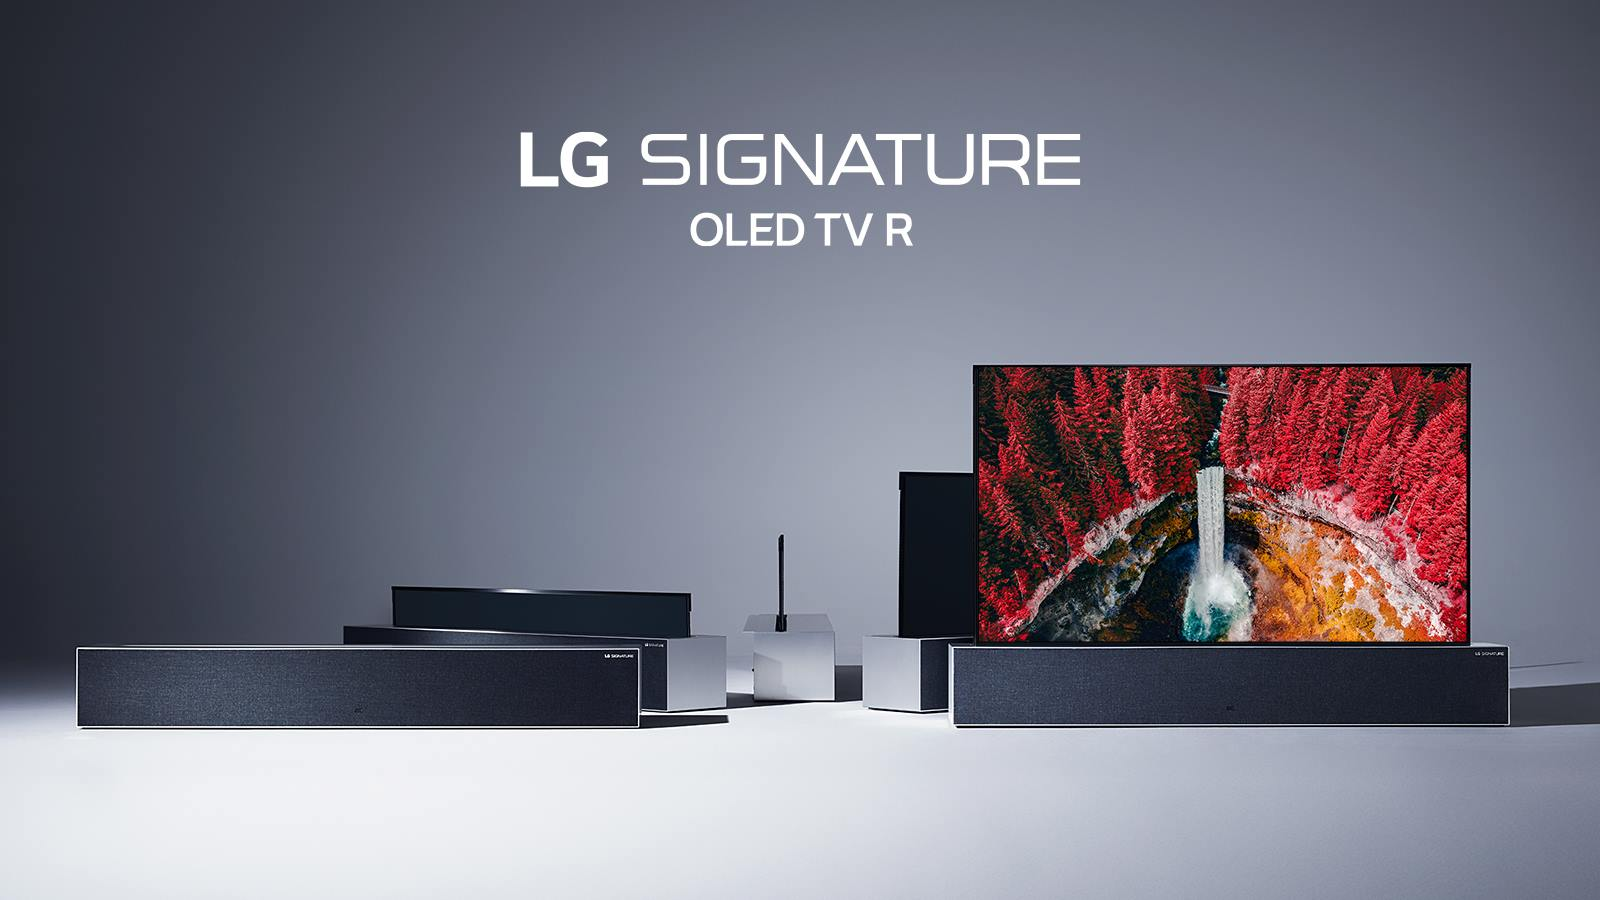 4 innovative devices from LG Electronics - Nerd Reactor